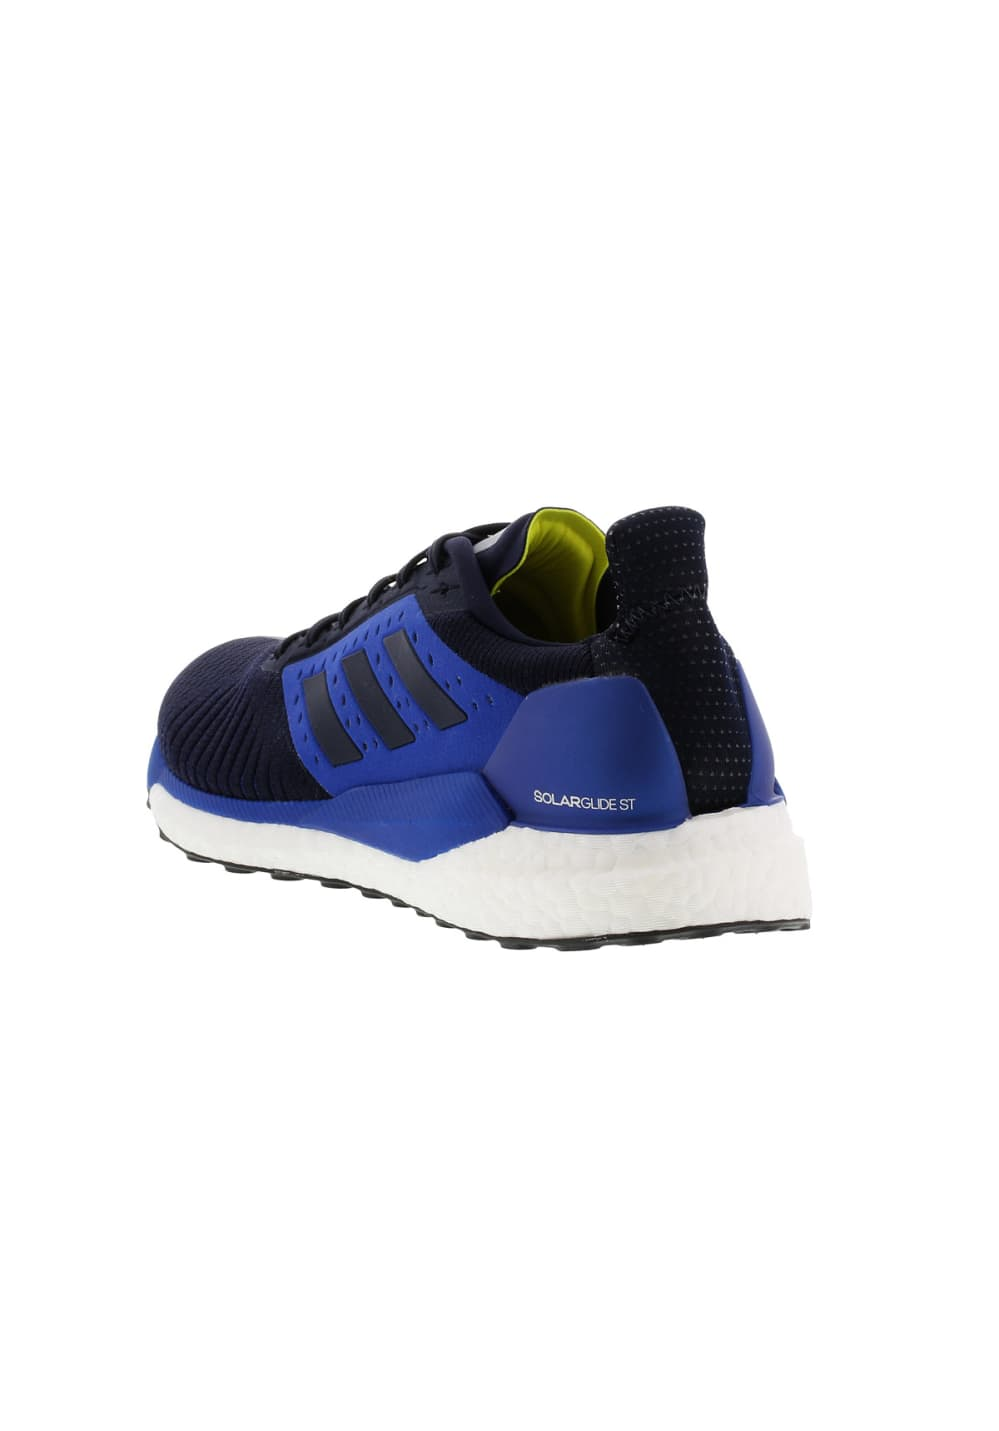 66a87d0cd91 Previous. Next. -60%. adidas. Solar Glide St - Running shoes for Men